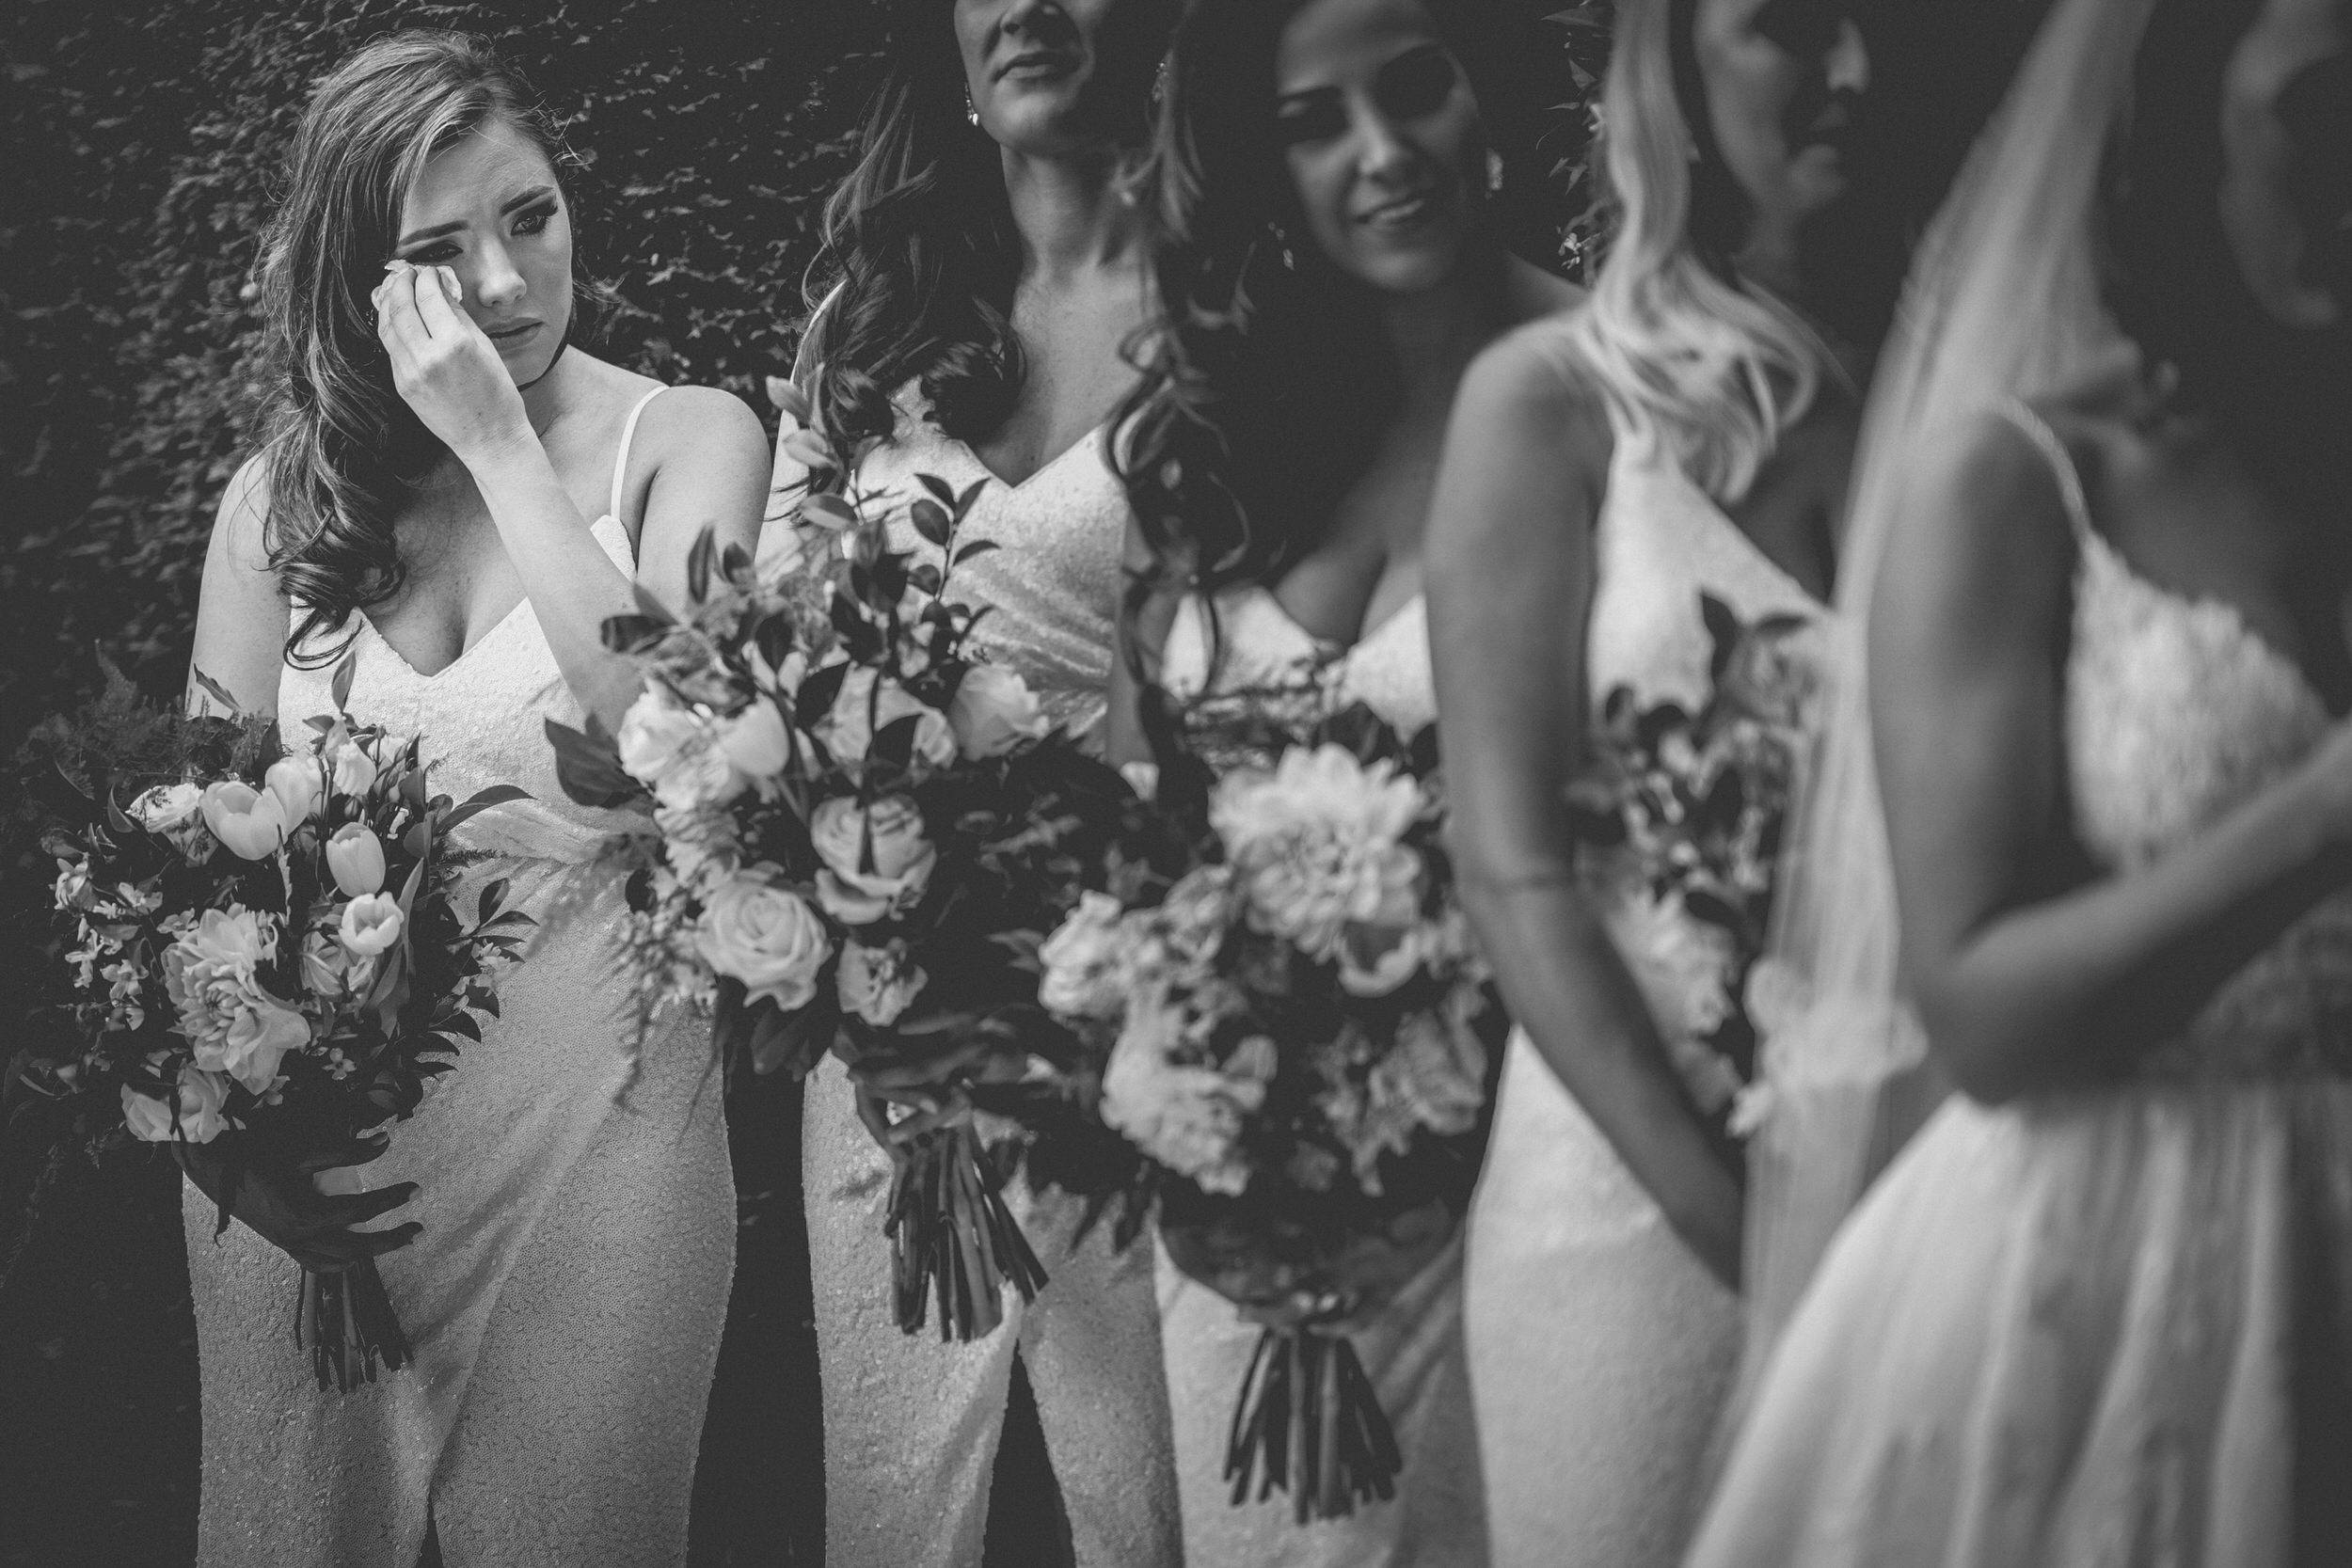 Documentary photography. Black and white of the bridesmaid shedding a tear.